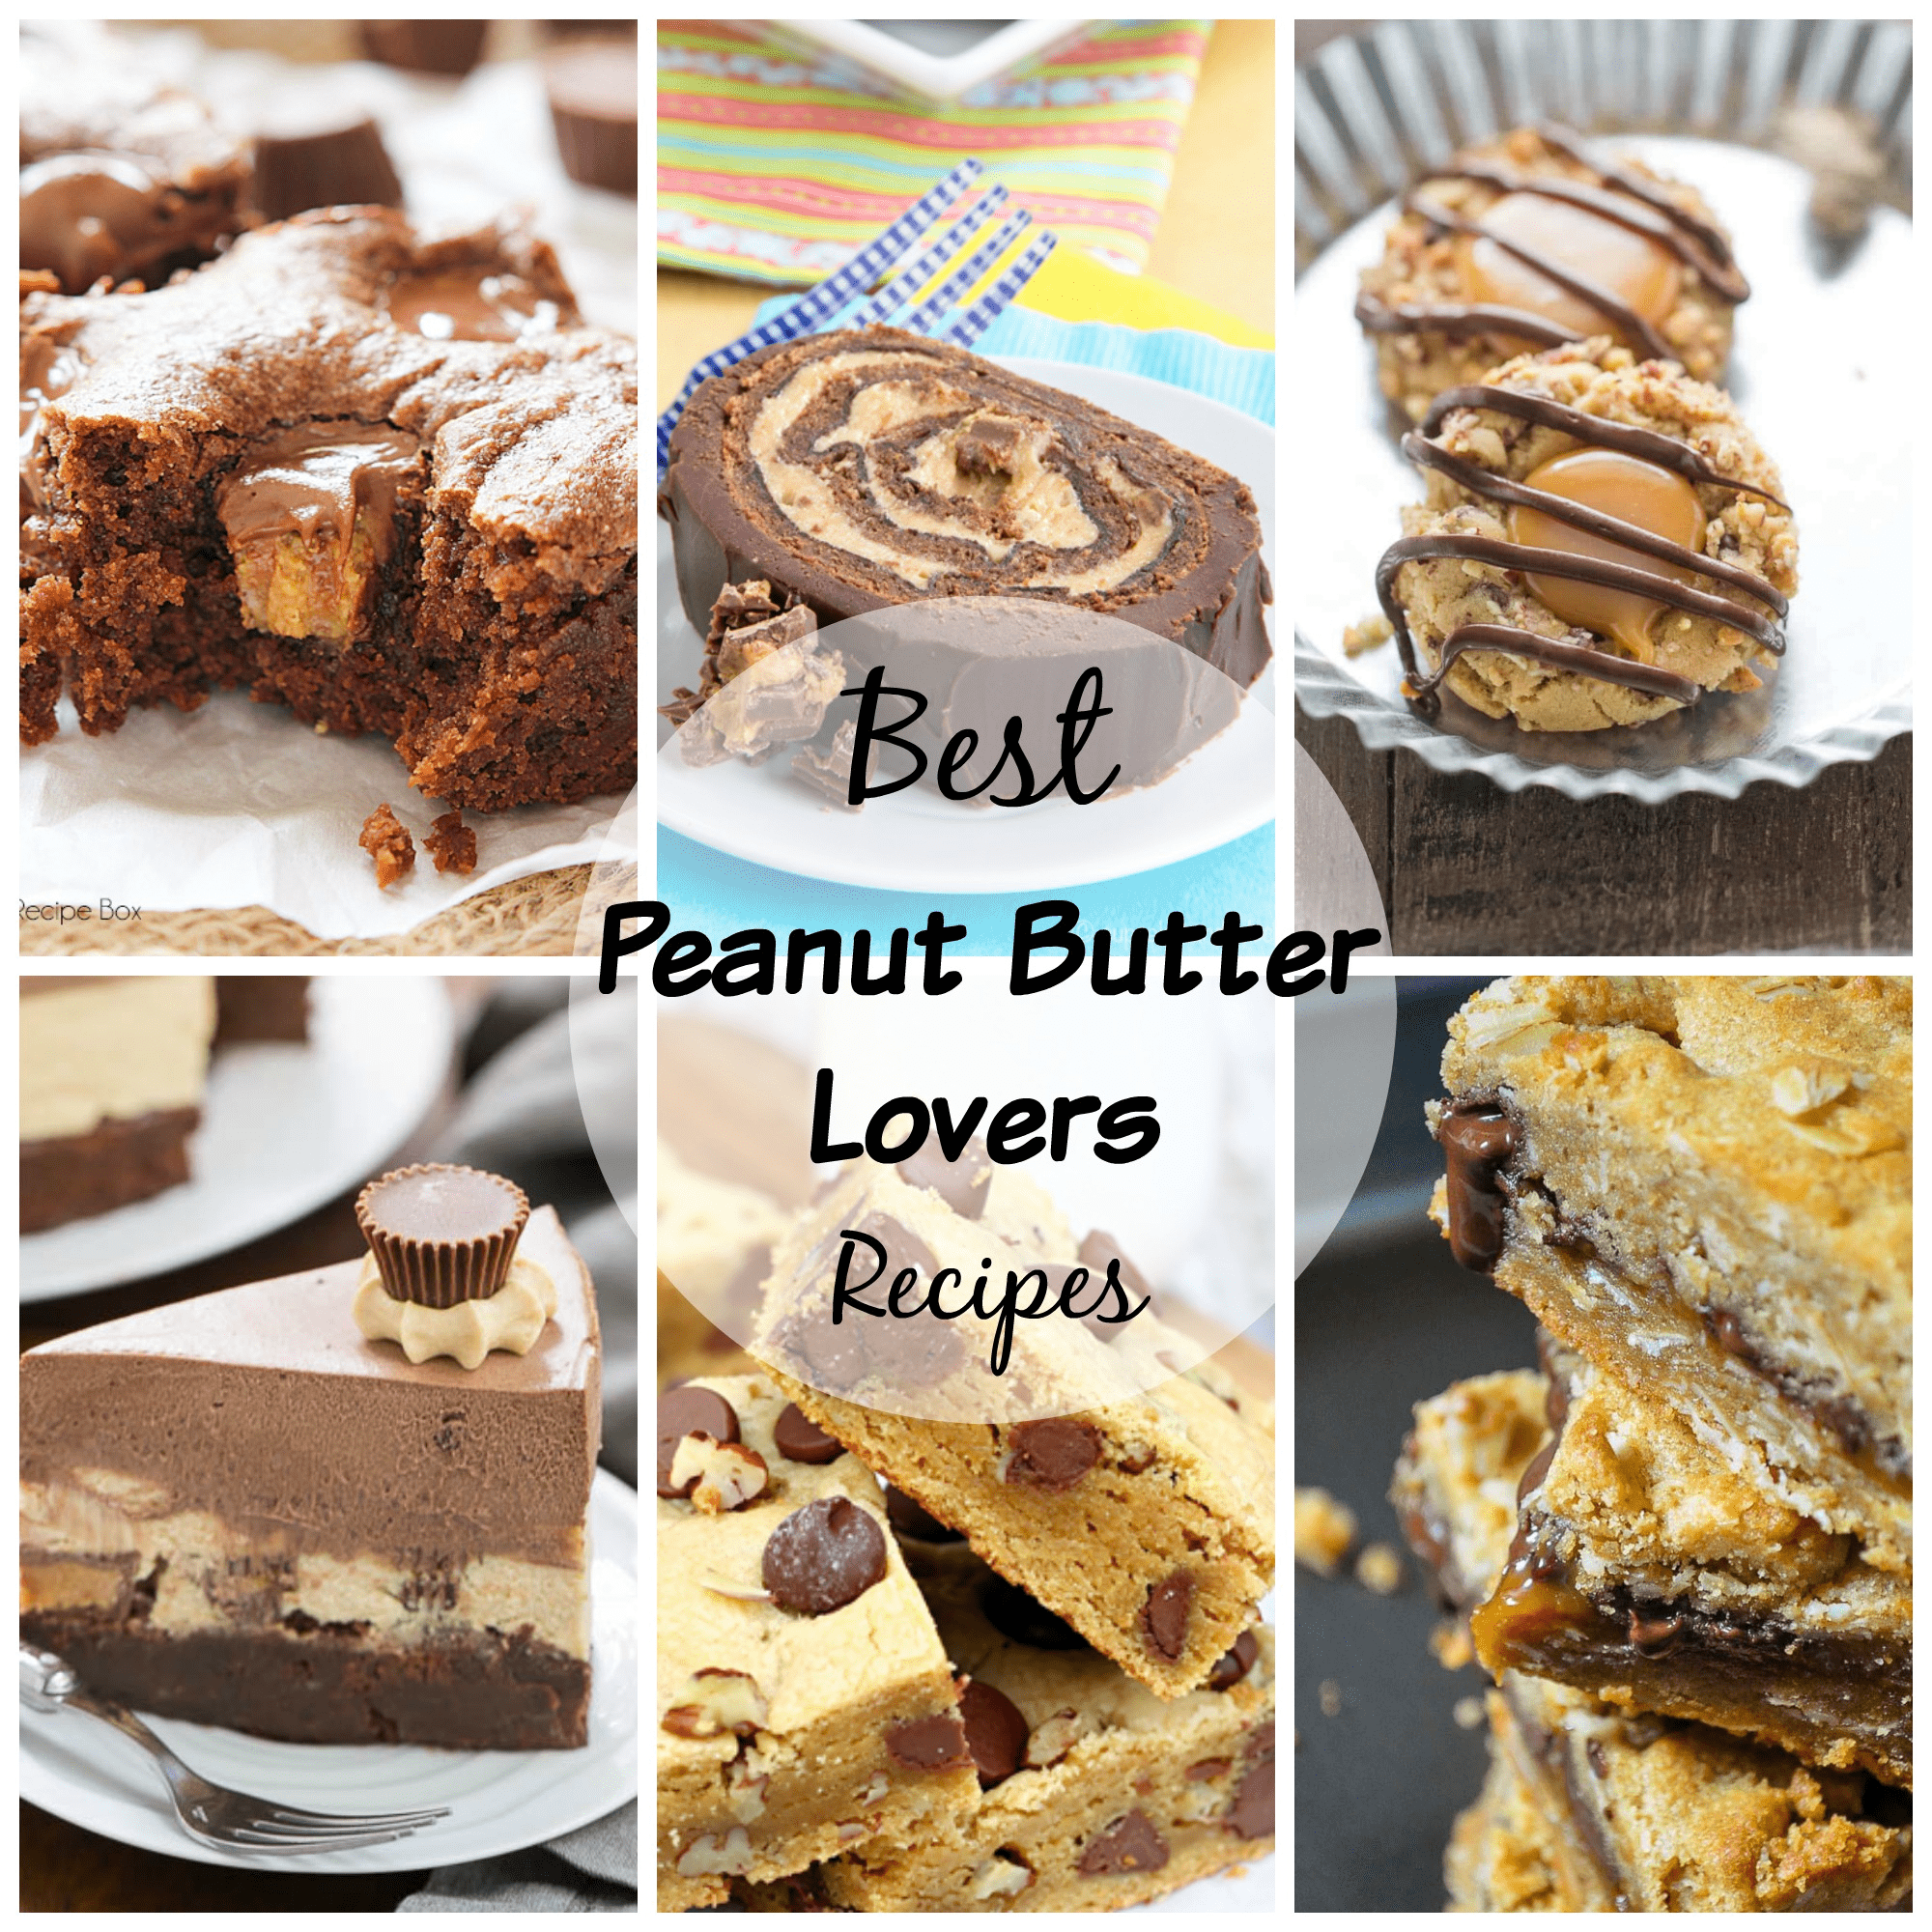 If you like peanut butter, you're going to love this compilation of THE Best Recipes for Peanut Butter Lovers. There's something for everyone to enjoy from a breakfast recipe, to peanut butter for dinner and lots in between. Enjoy!